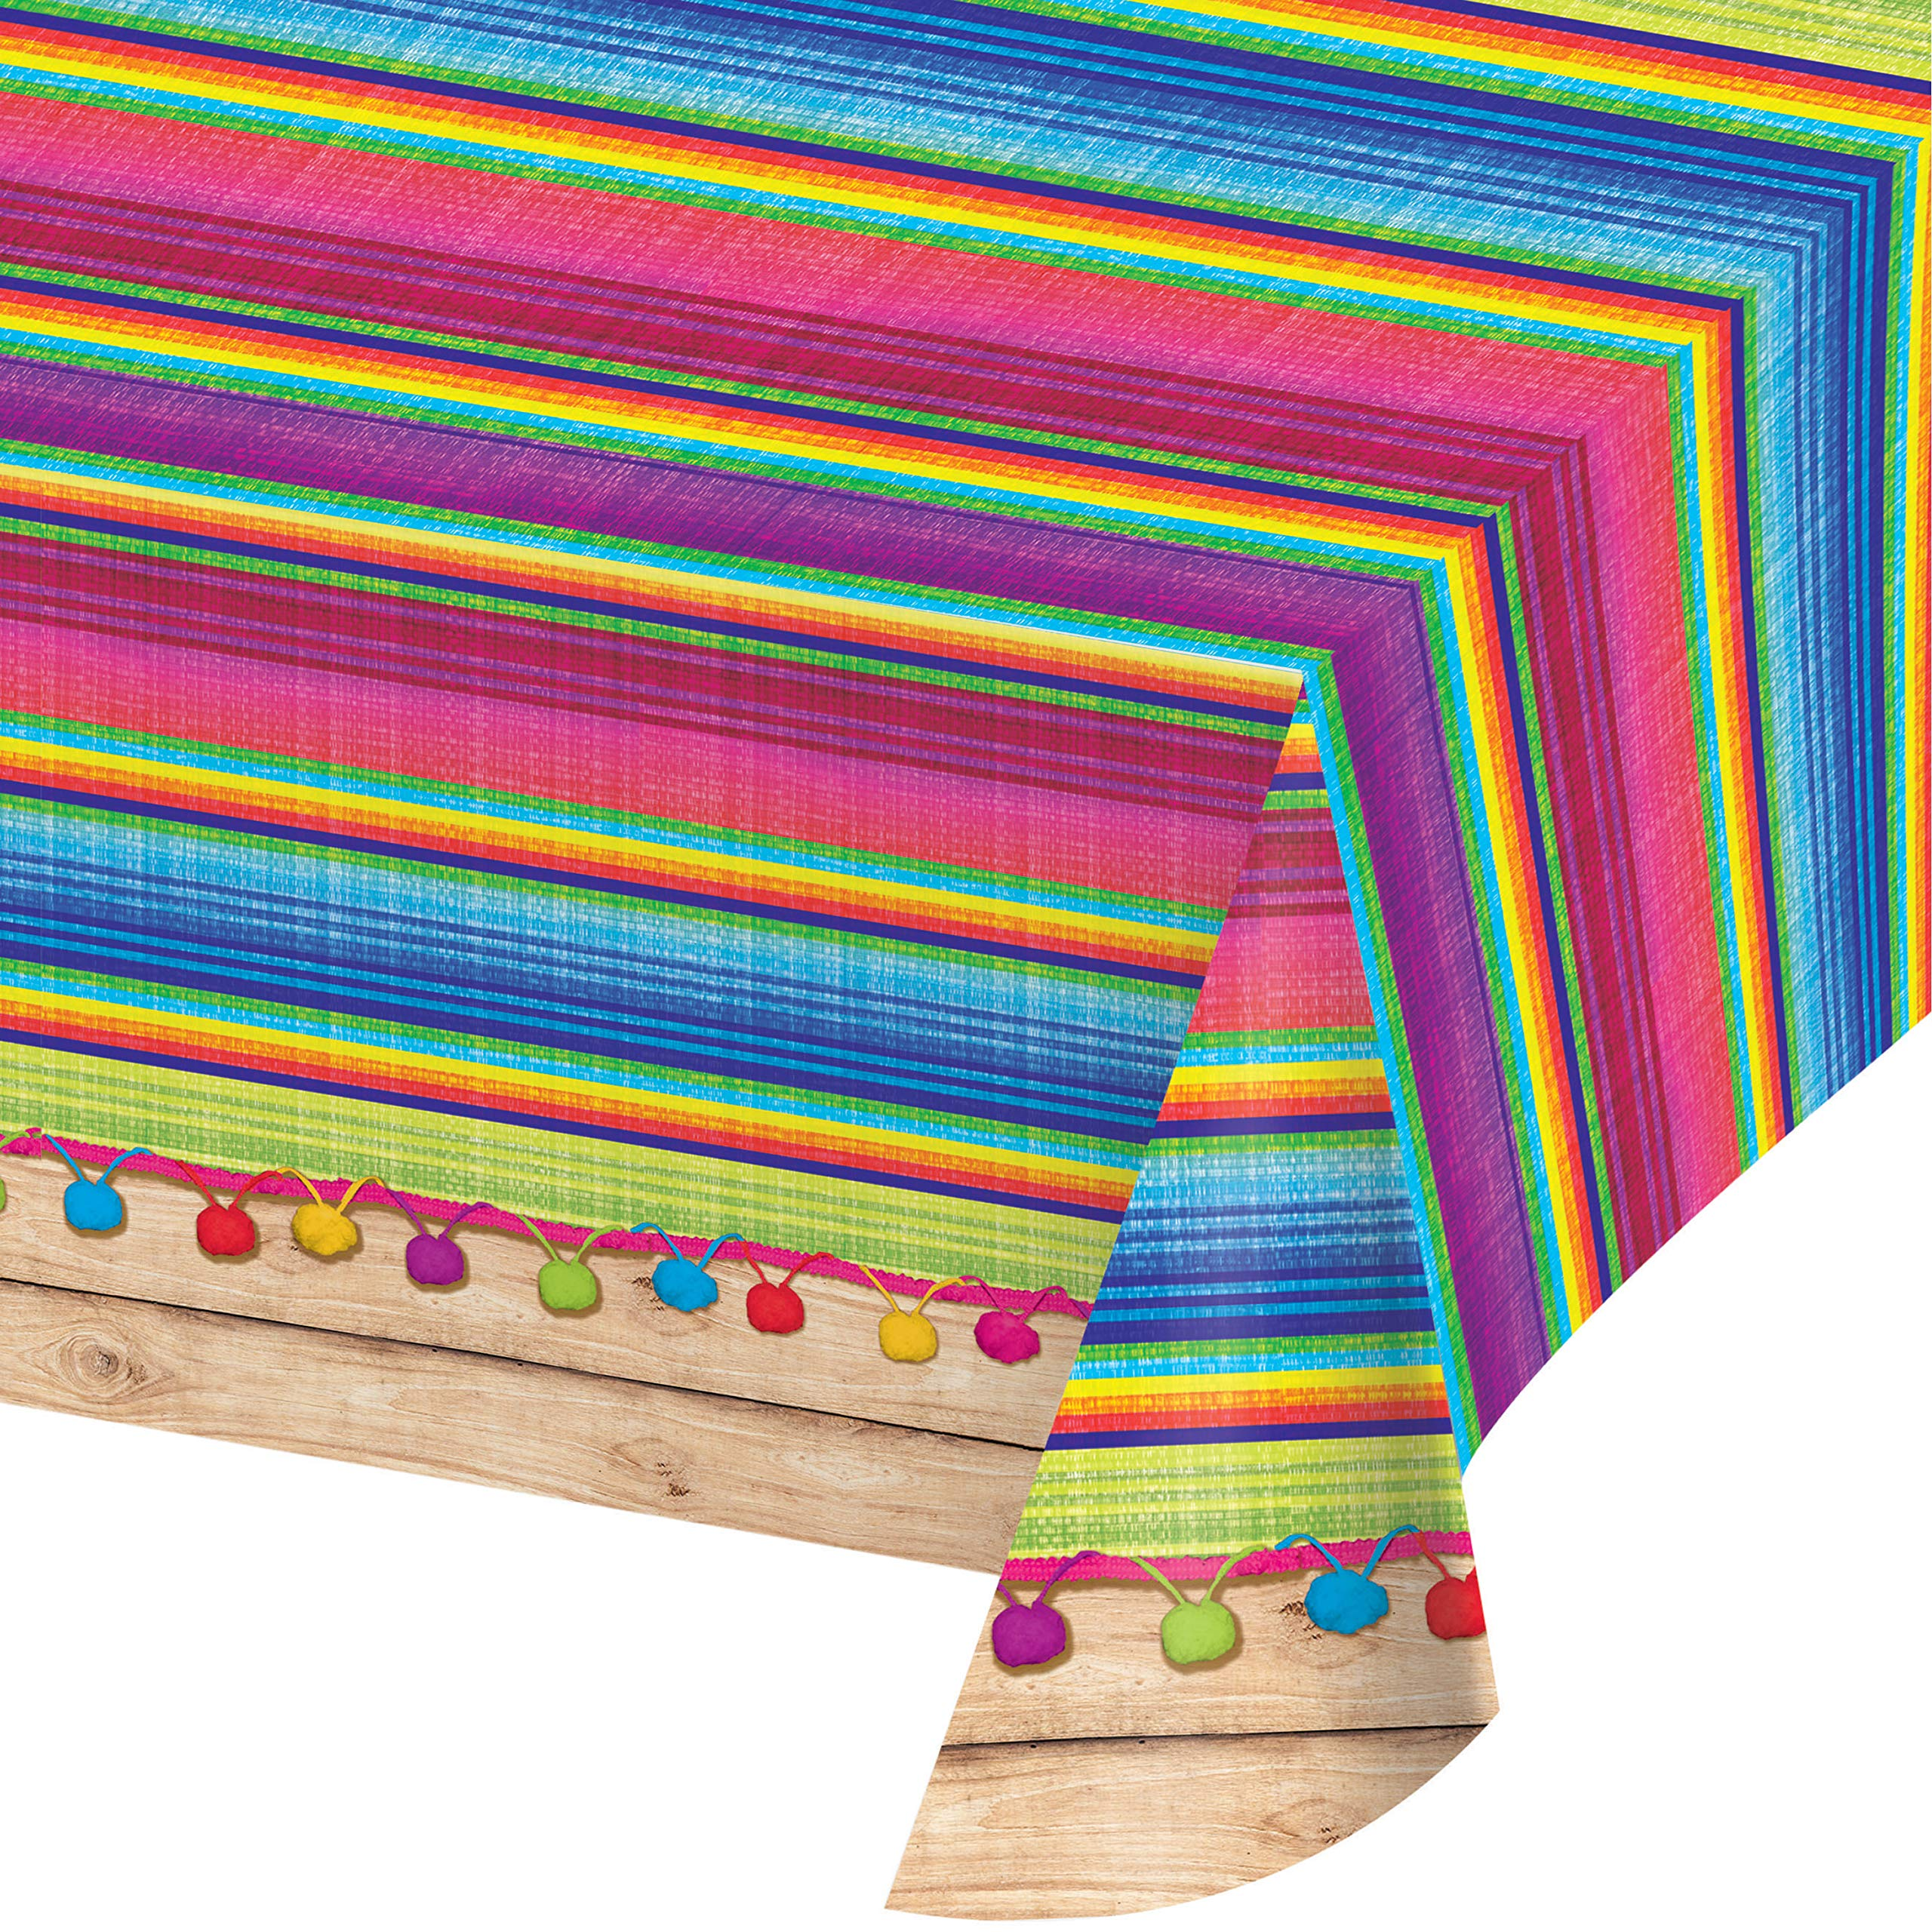 Serape Plastic Tablecloths, 3 ct by Creative Converting